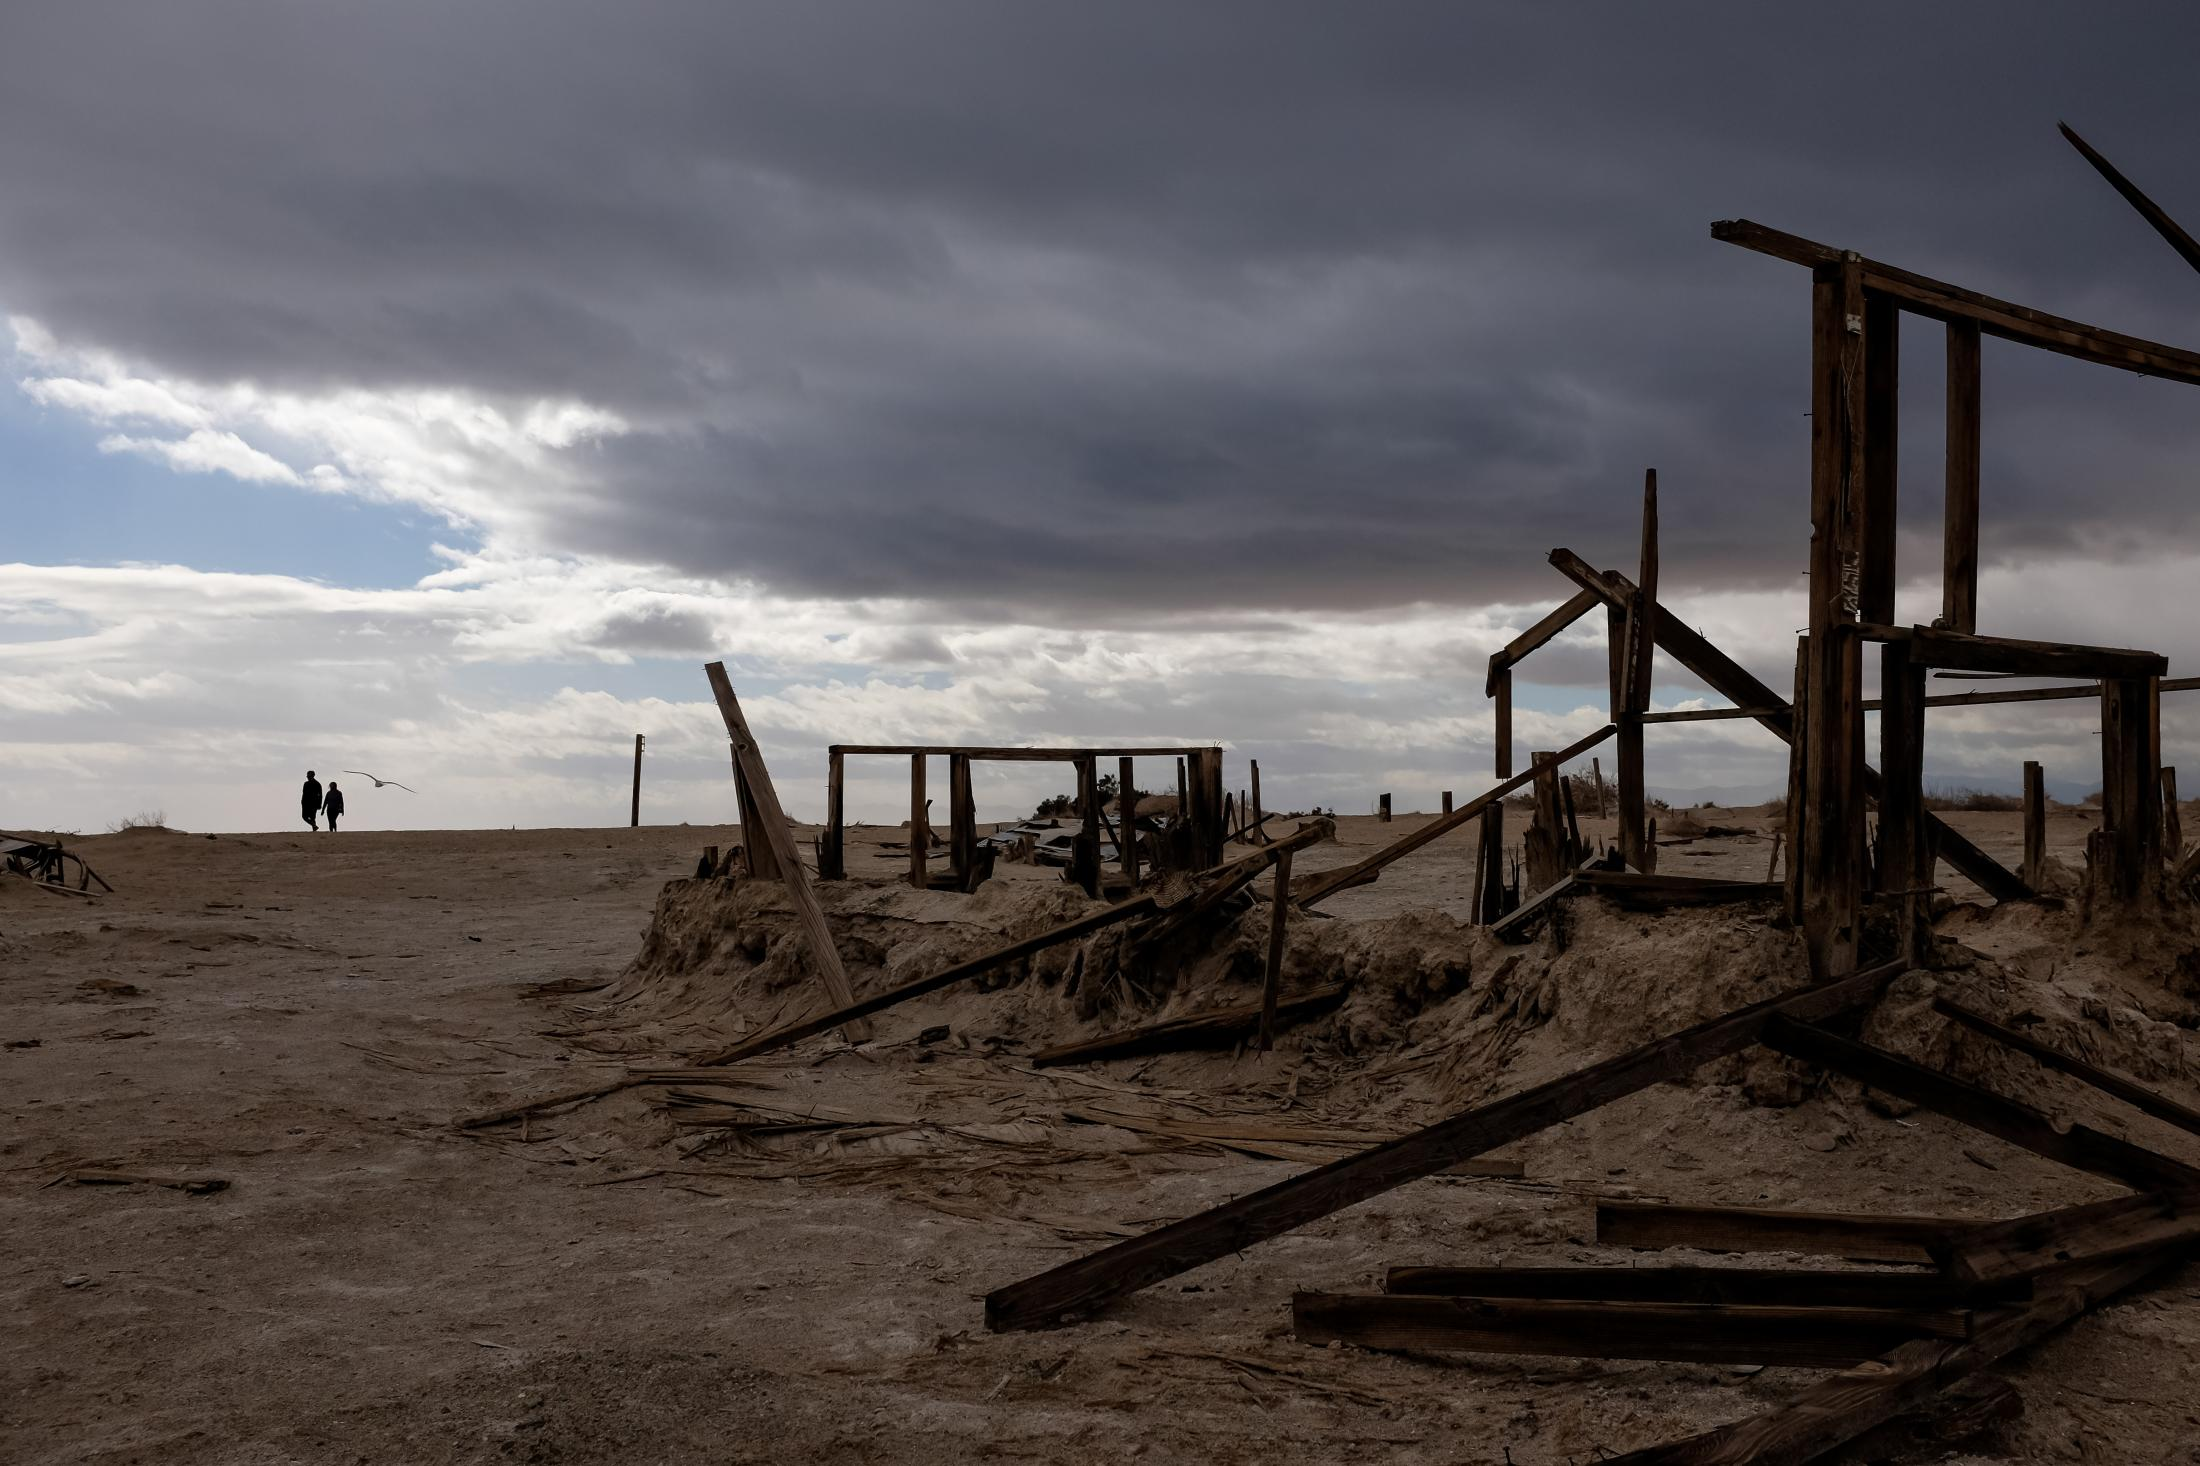 11/27/16-California - The remains of houses are left on The Salton Sea's desert beaches, once populated with summer vacation homes and resorts. It is mostly abandoned with just memories of the past.